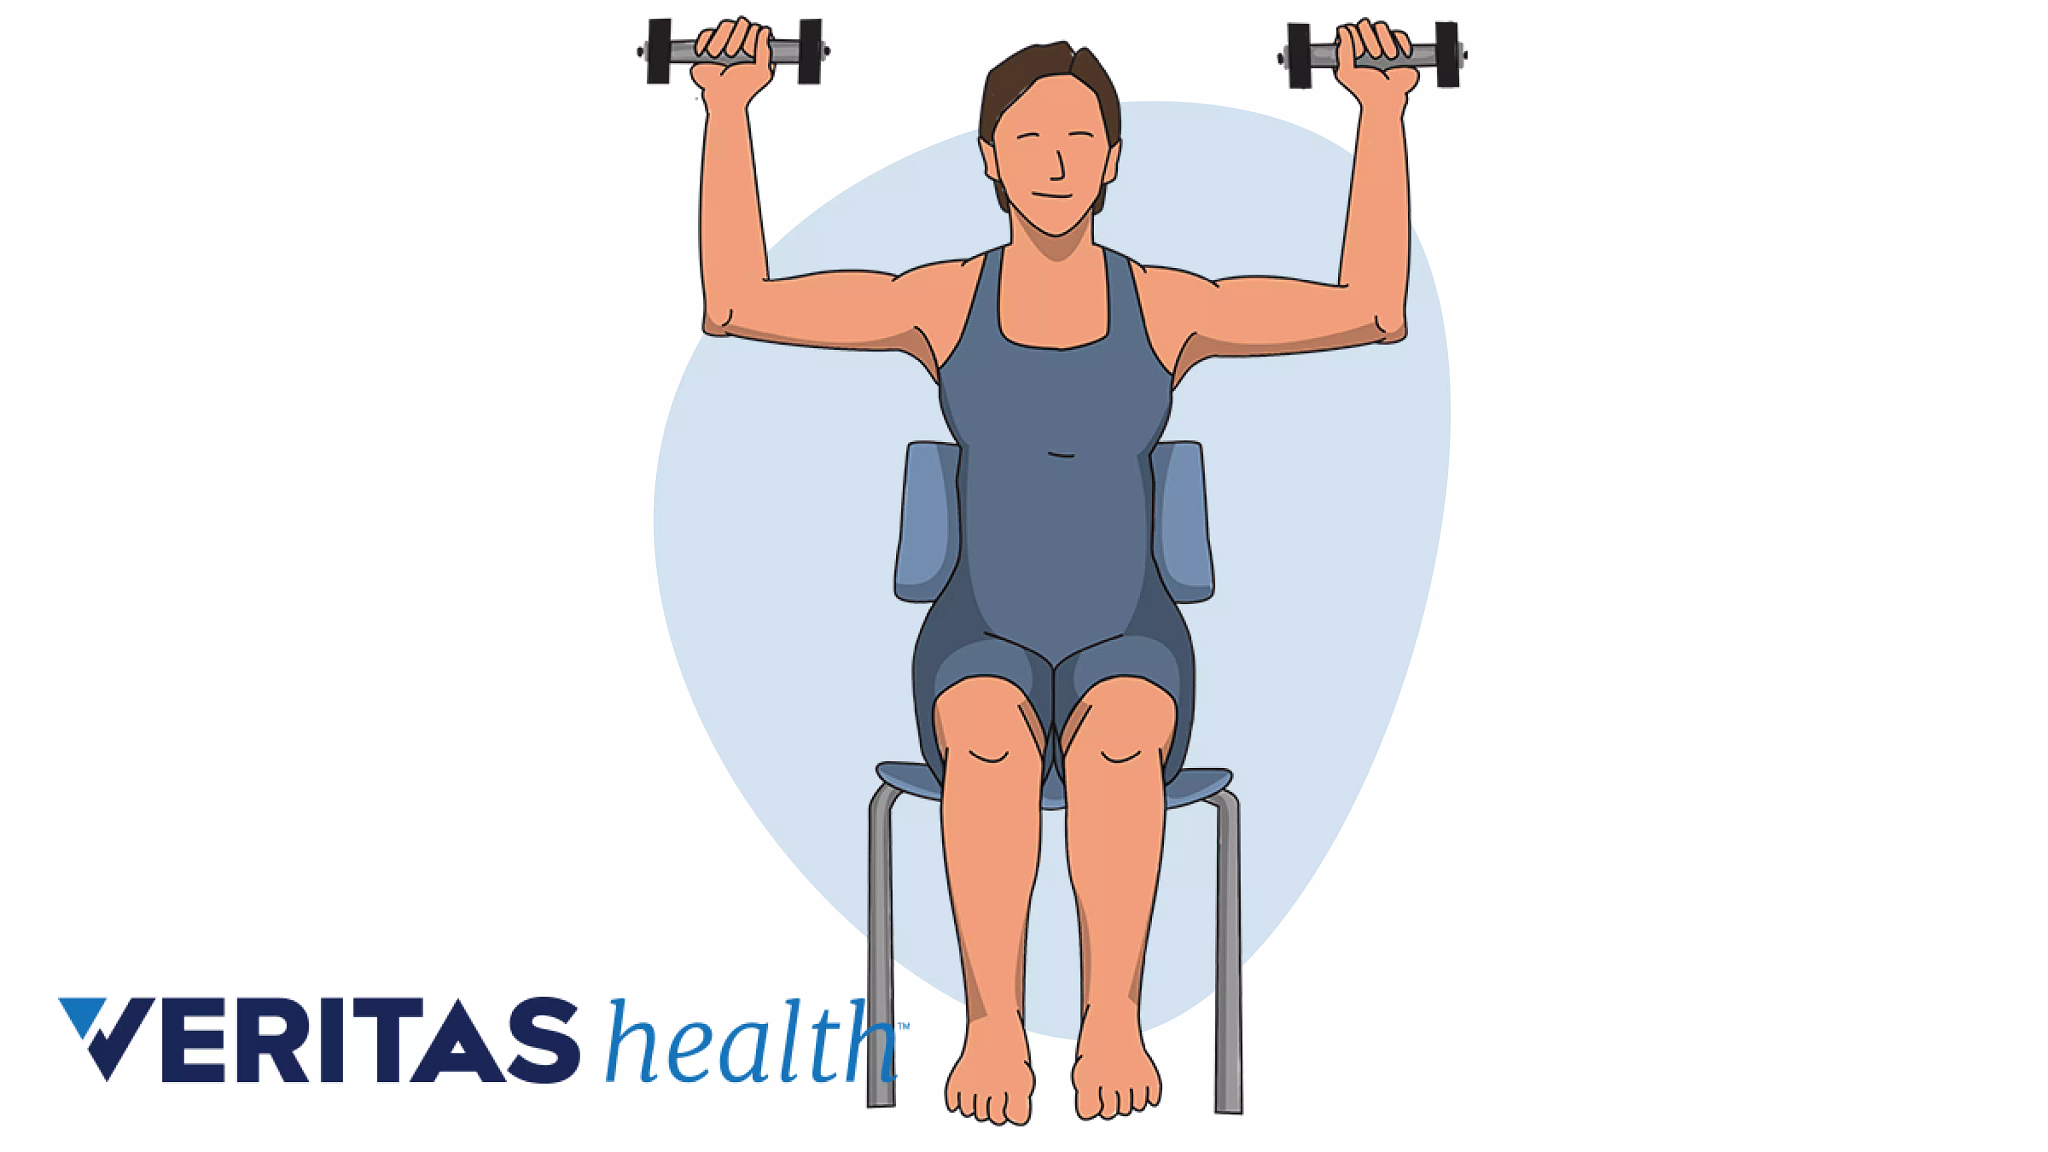 Person sitting in a chair with arms raised, holding dumbbells doing a shoulder press exercise